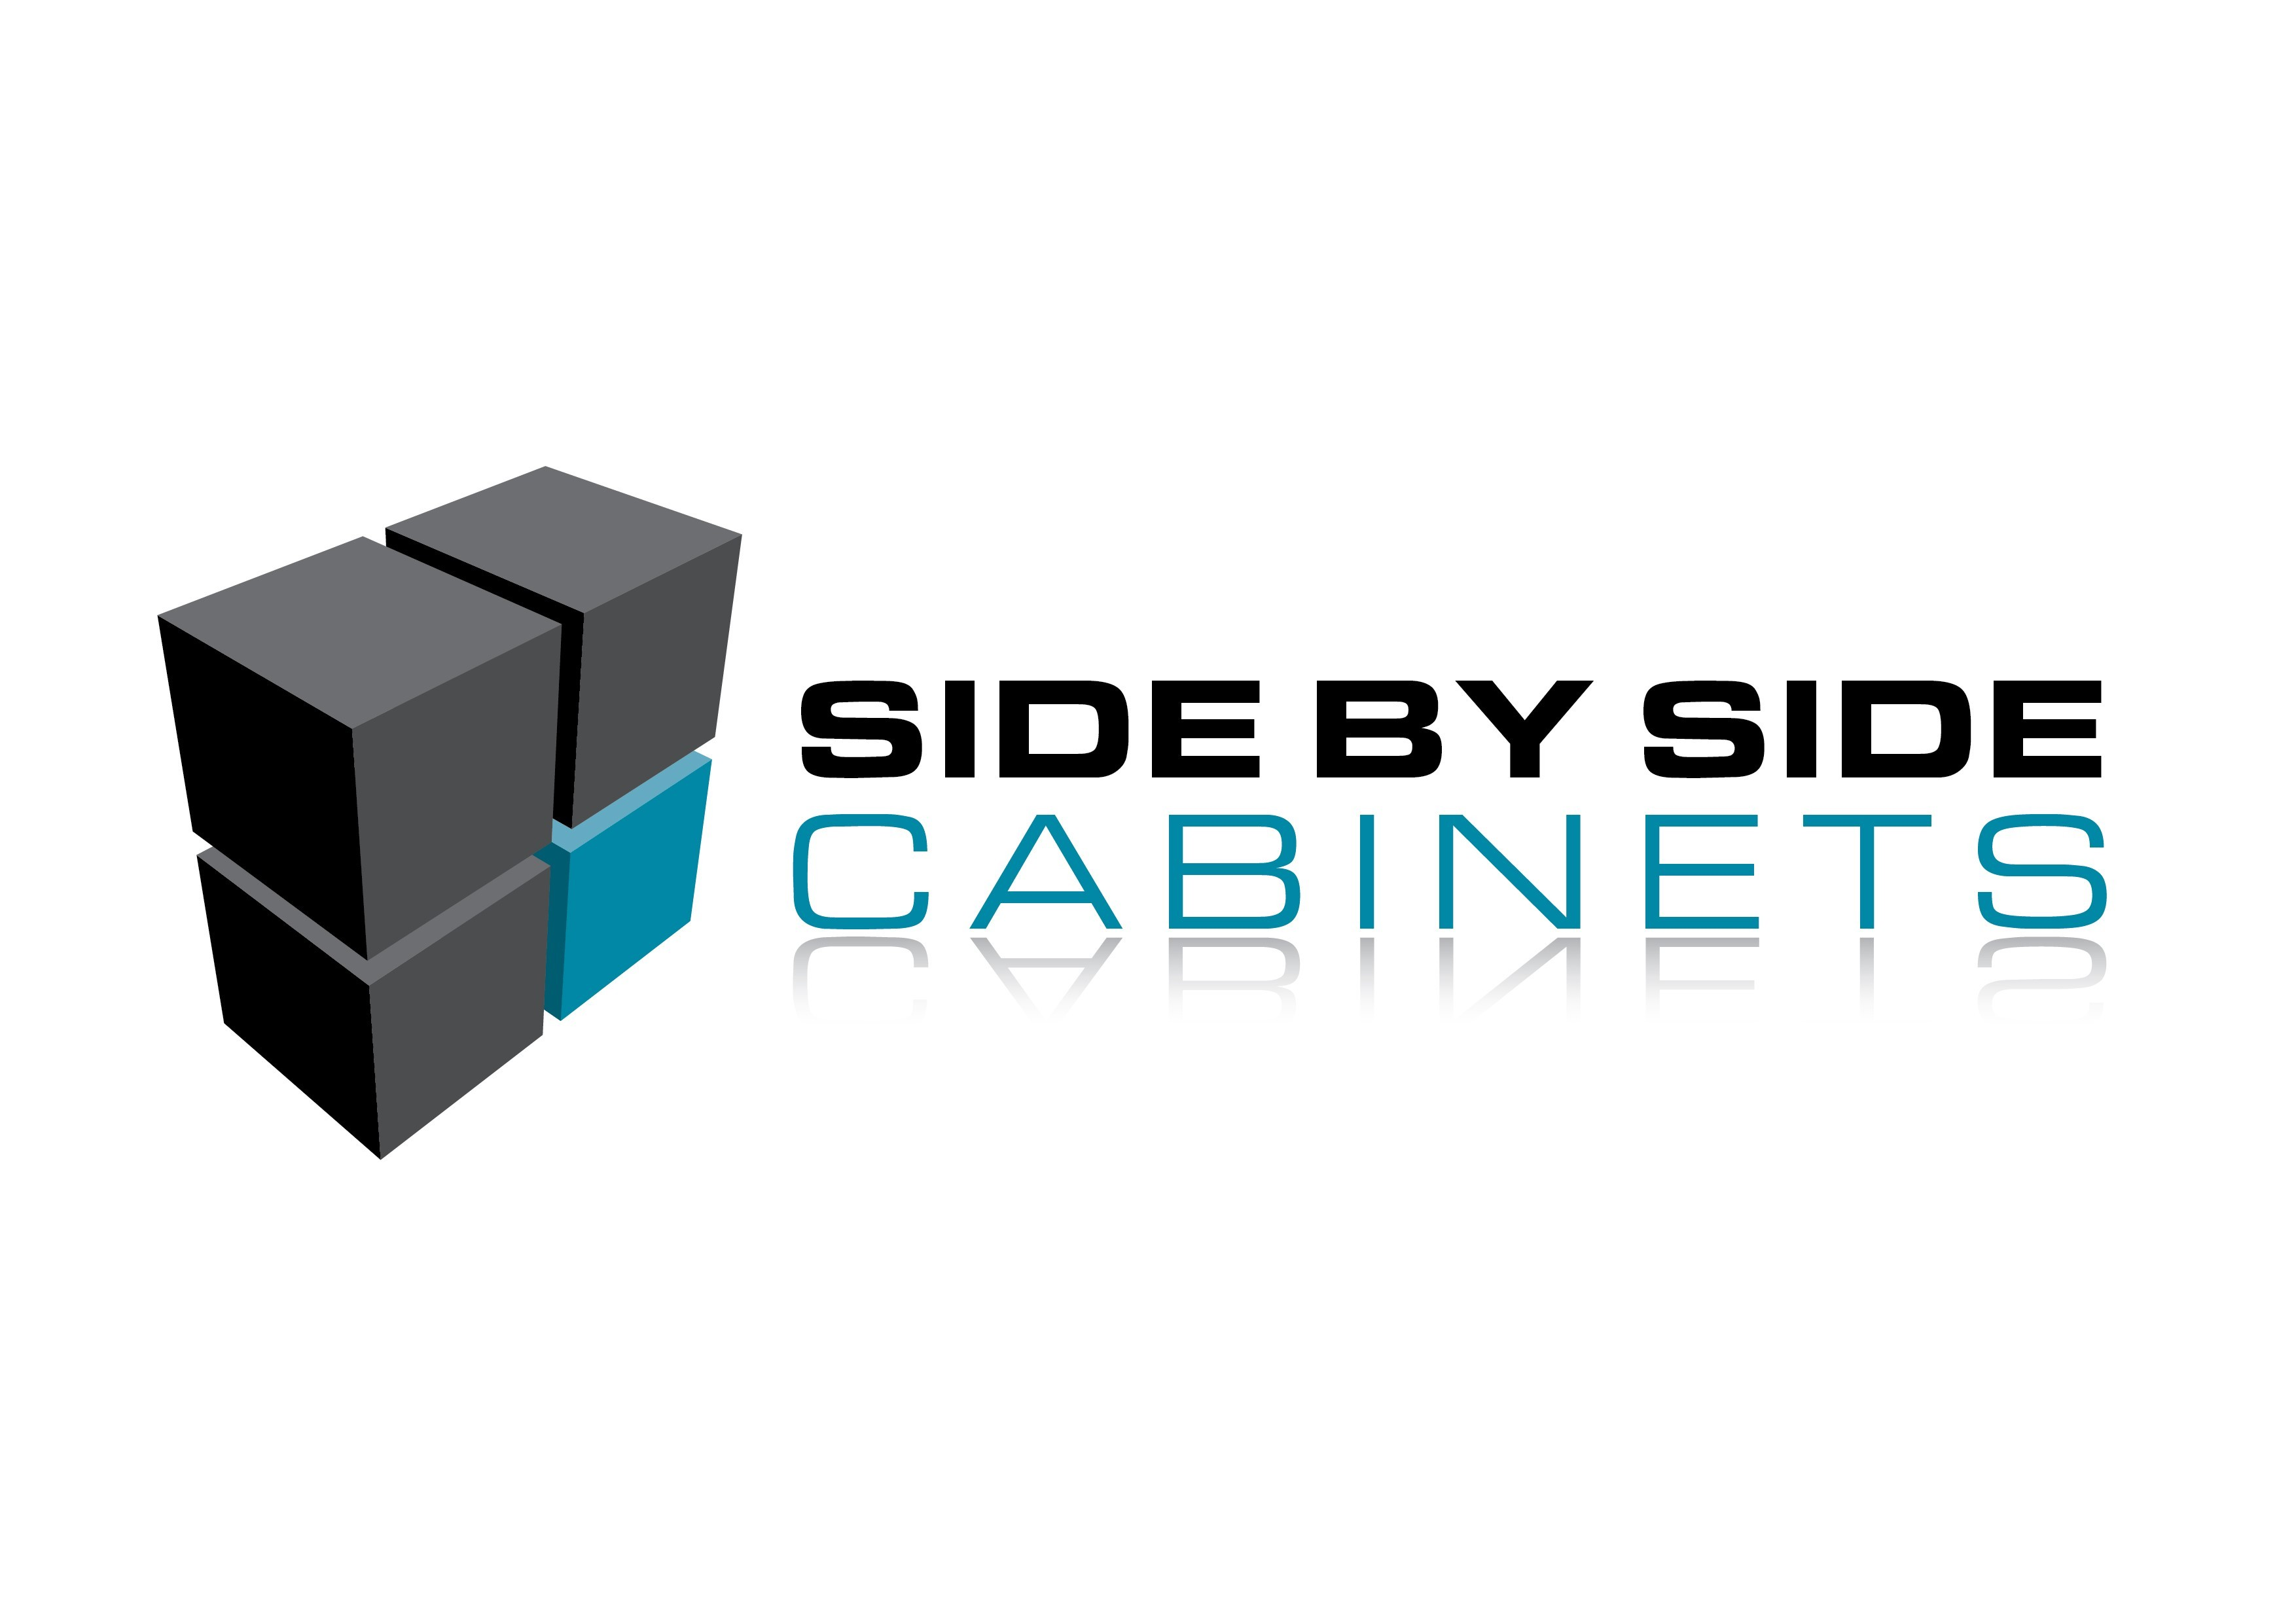 SIDE BY SIDE CABINETS Company Logo by SIDE BY SIDE CABINETS in Clarkson WA